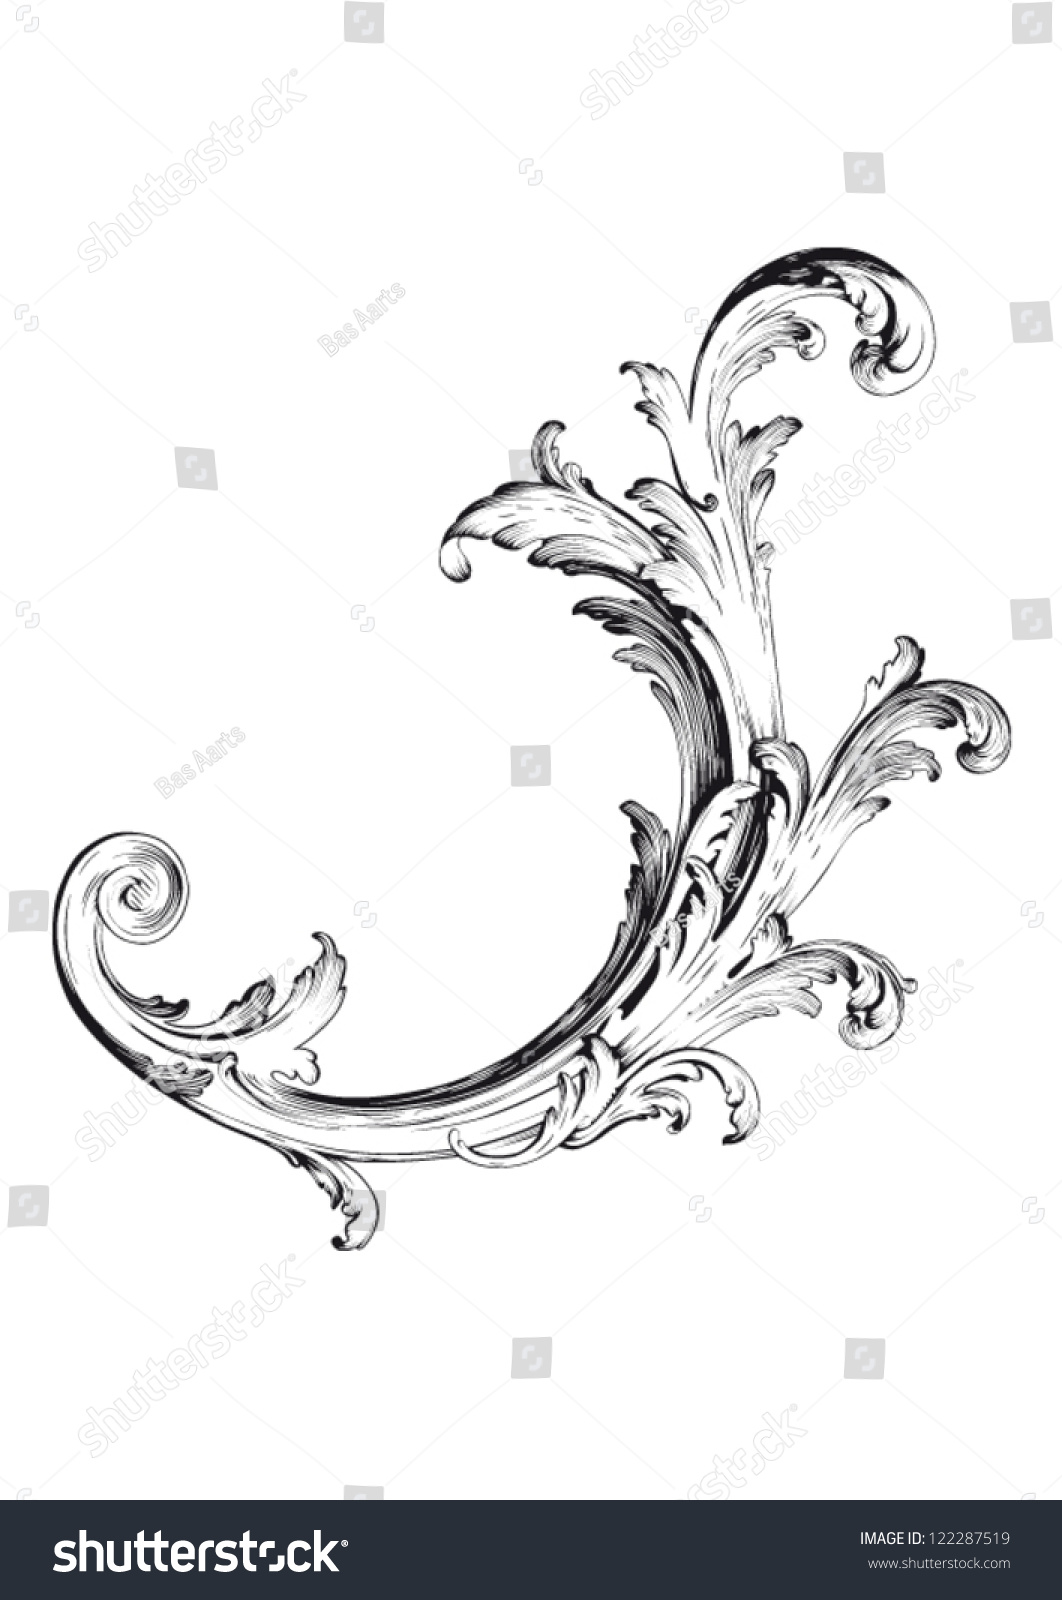 High Definition Vintage Victorian Curl Swirl Stock Vector ...